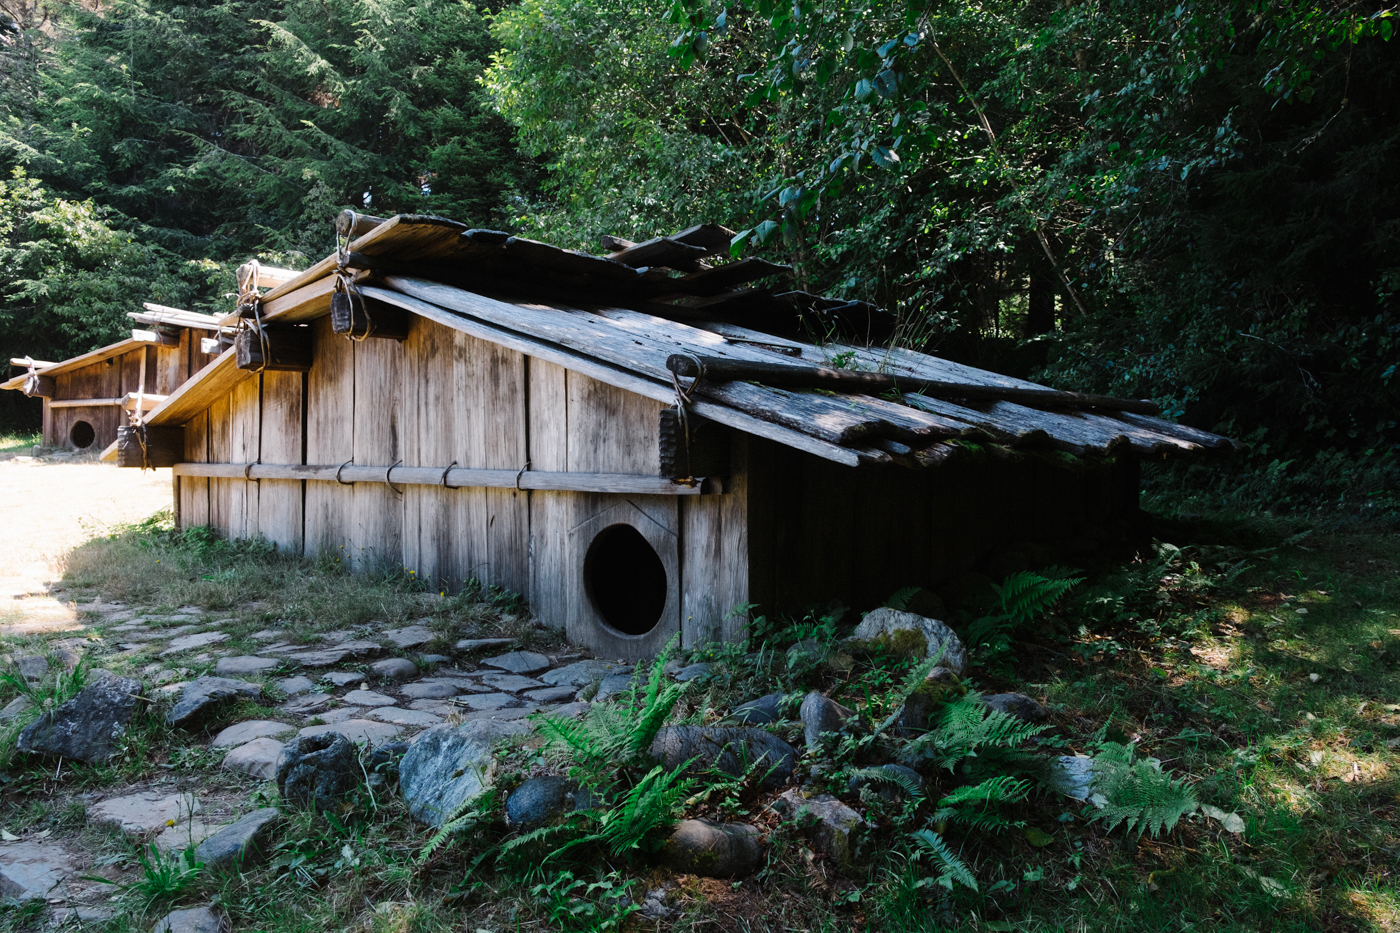 Traditional Yurok family home - Let's Photo Trip Patrick's Point